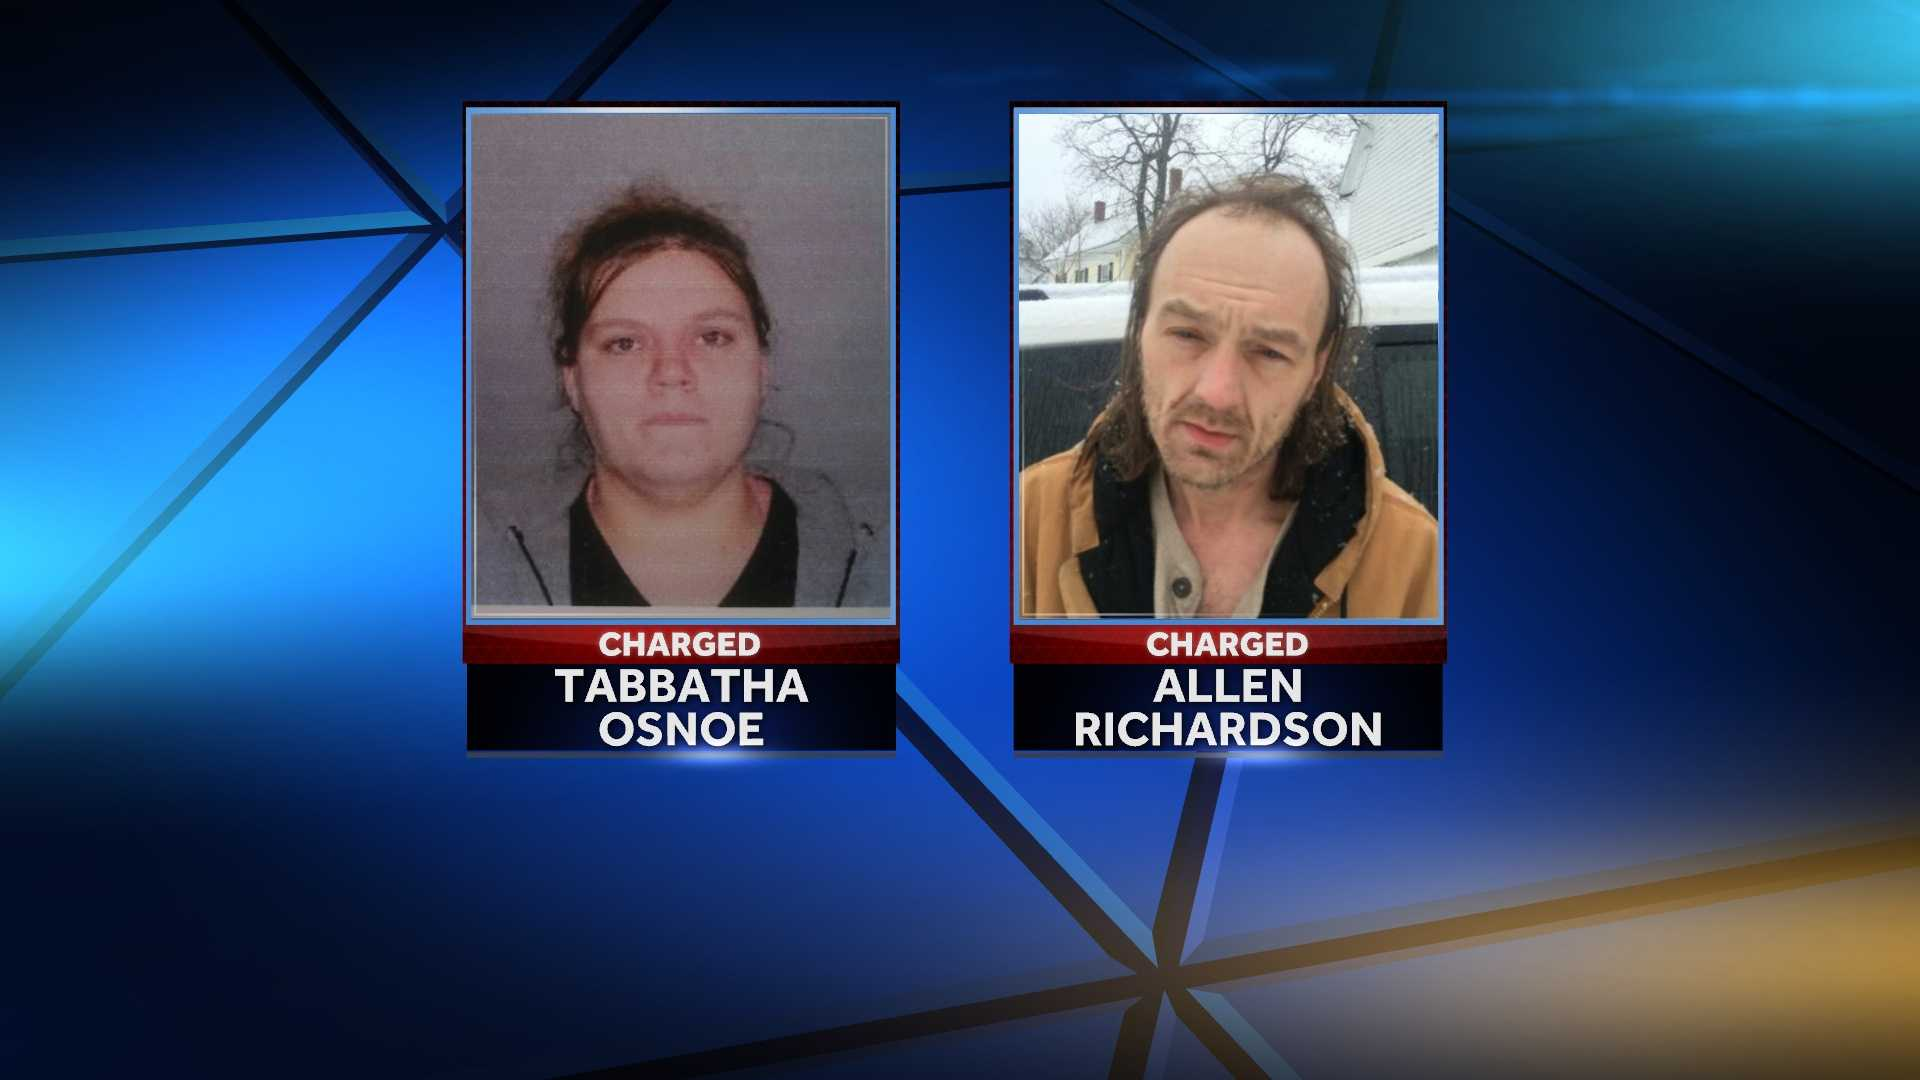 Allen Richardson and Tabbatha Osnoe are charged with Class B trafficking of methamphetamine, a Schedule W drug